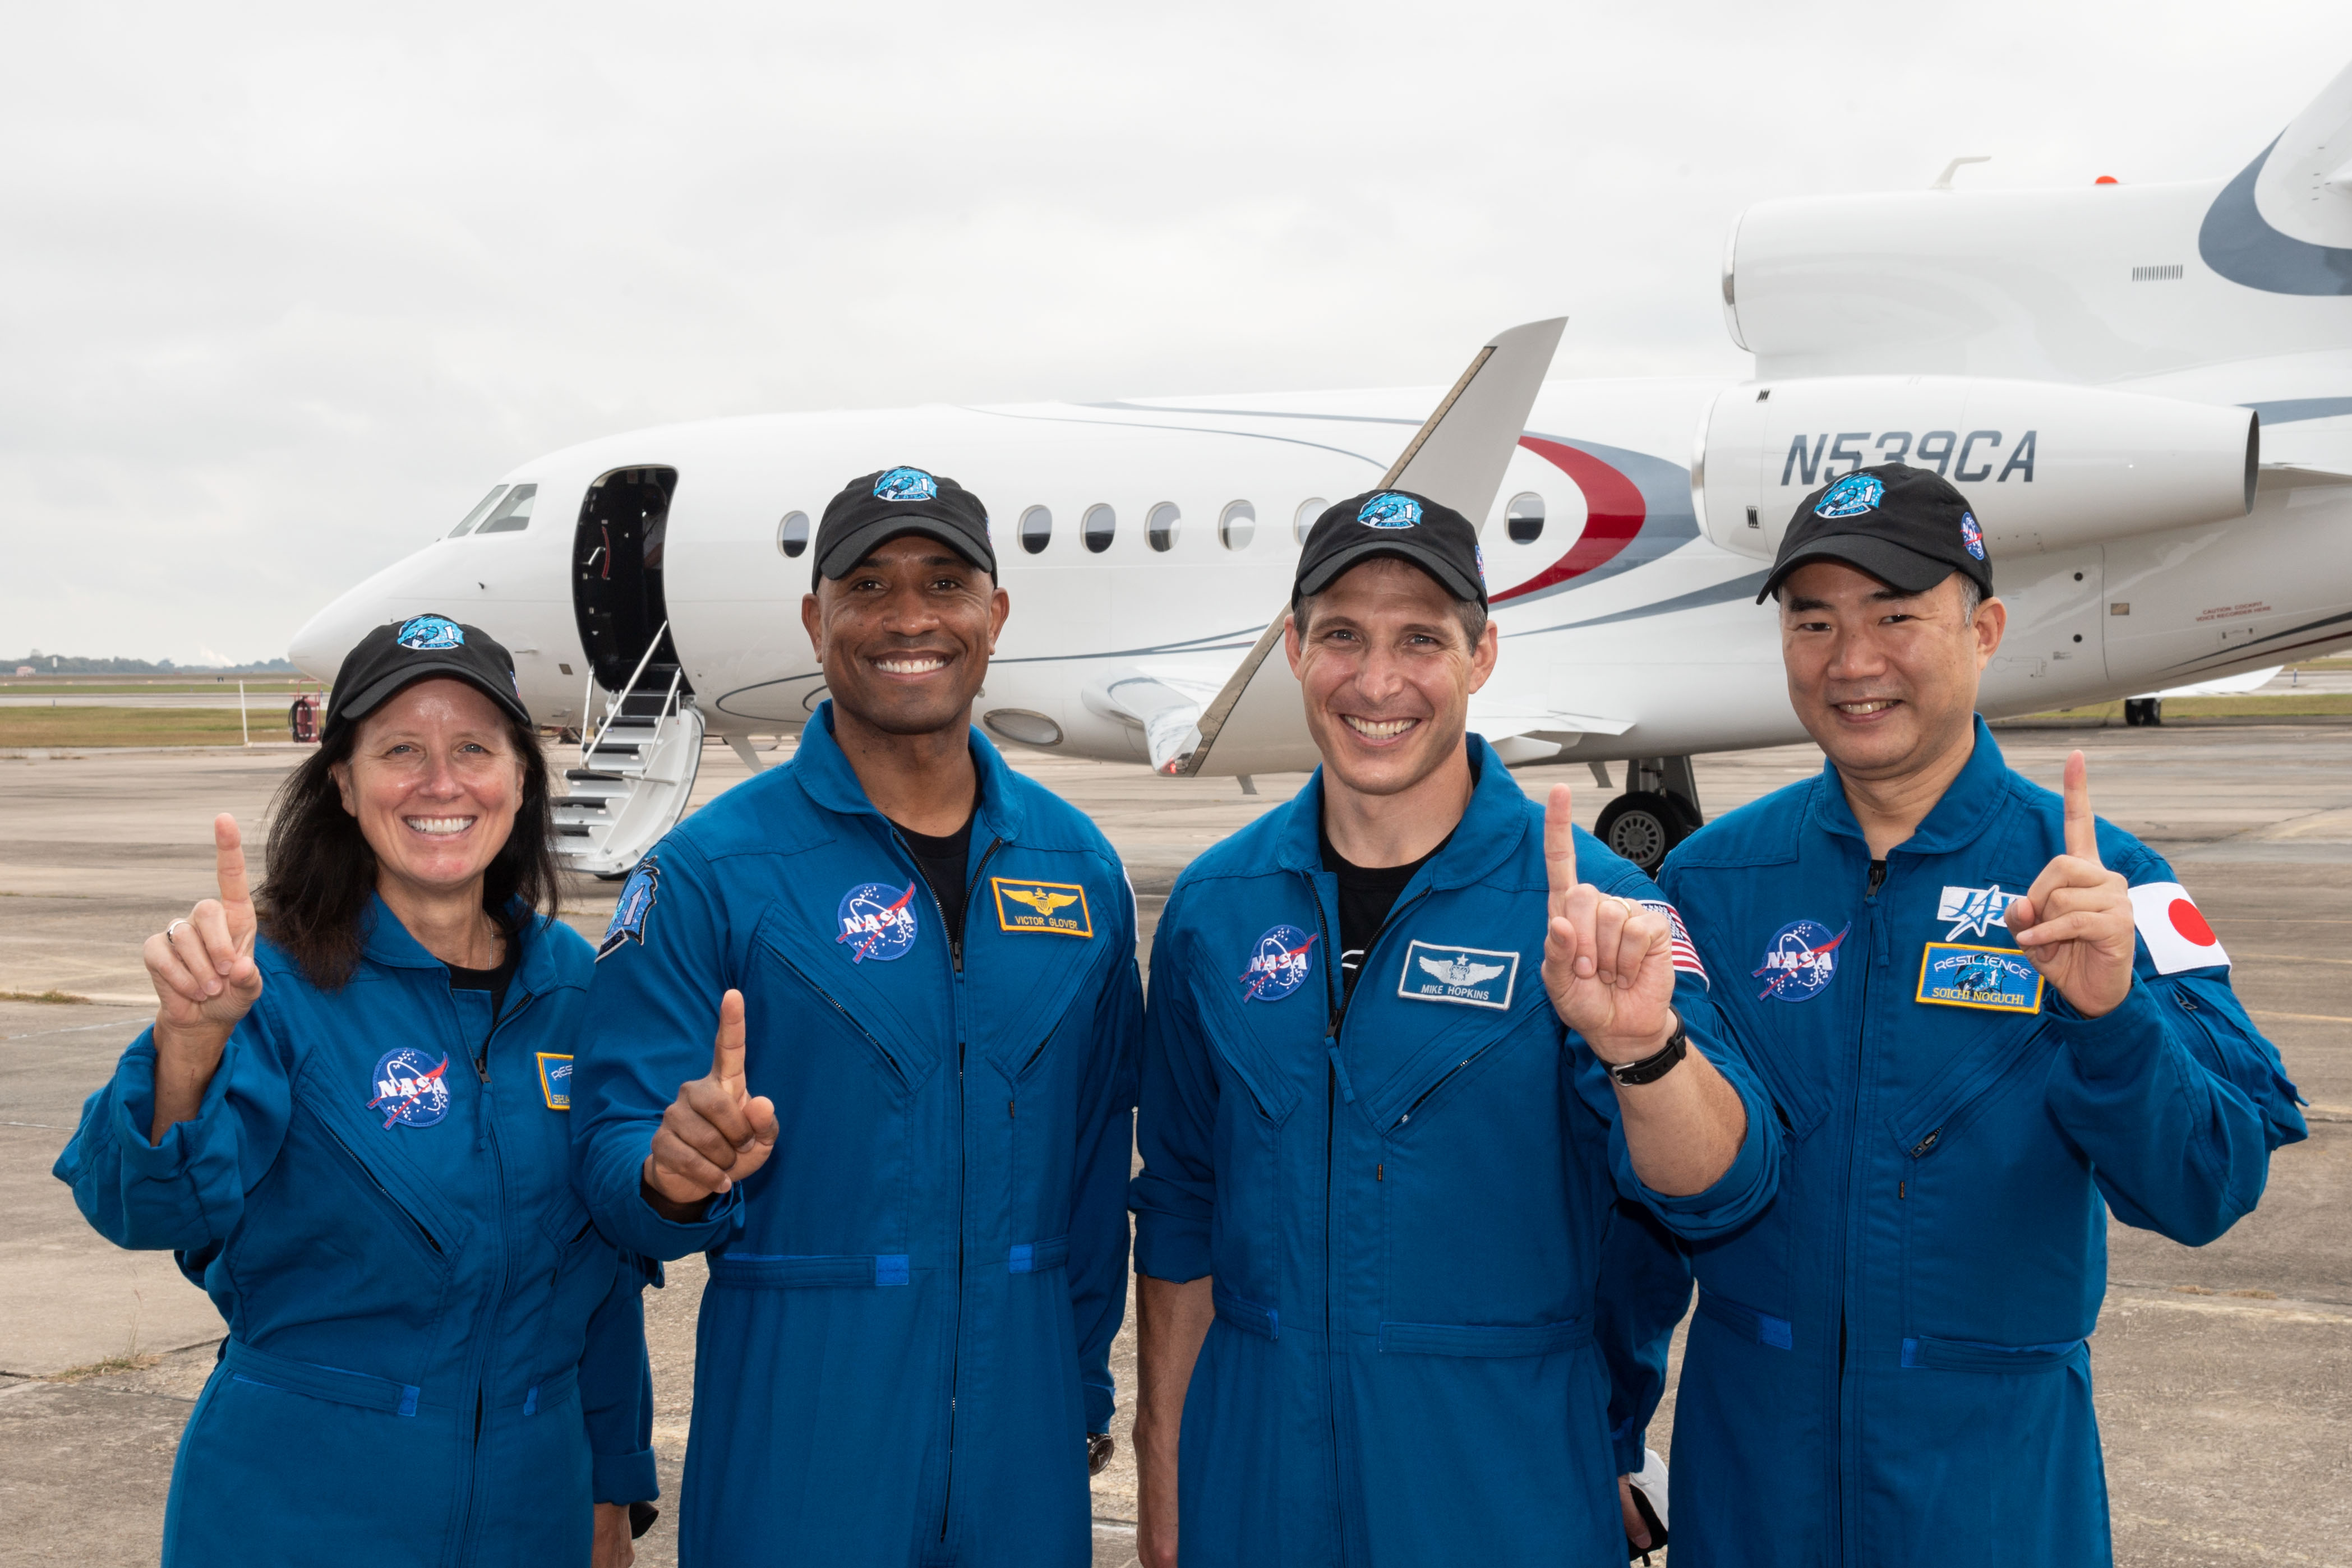 From left, Crew-1 astronauts Shannon Walker, Victor Gover, Michael Hopkins and Soichi Noguchi at Nasa's Johnson Space Center in Houston, Texas